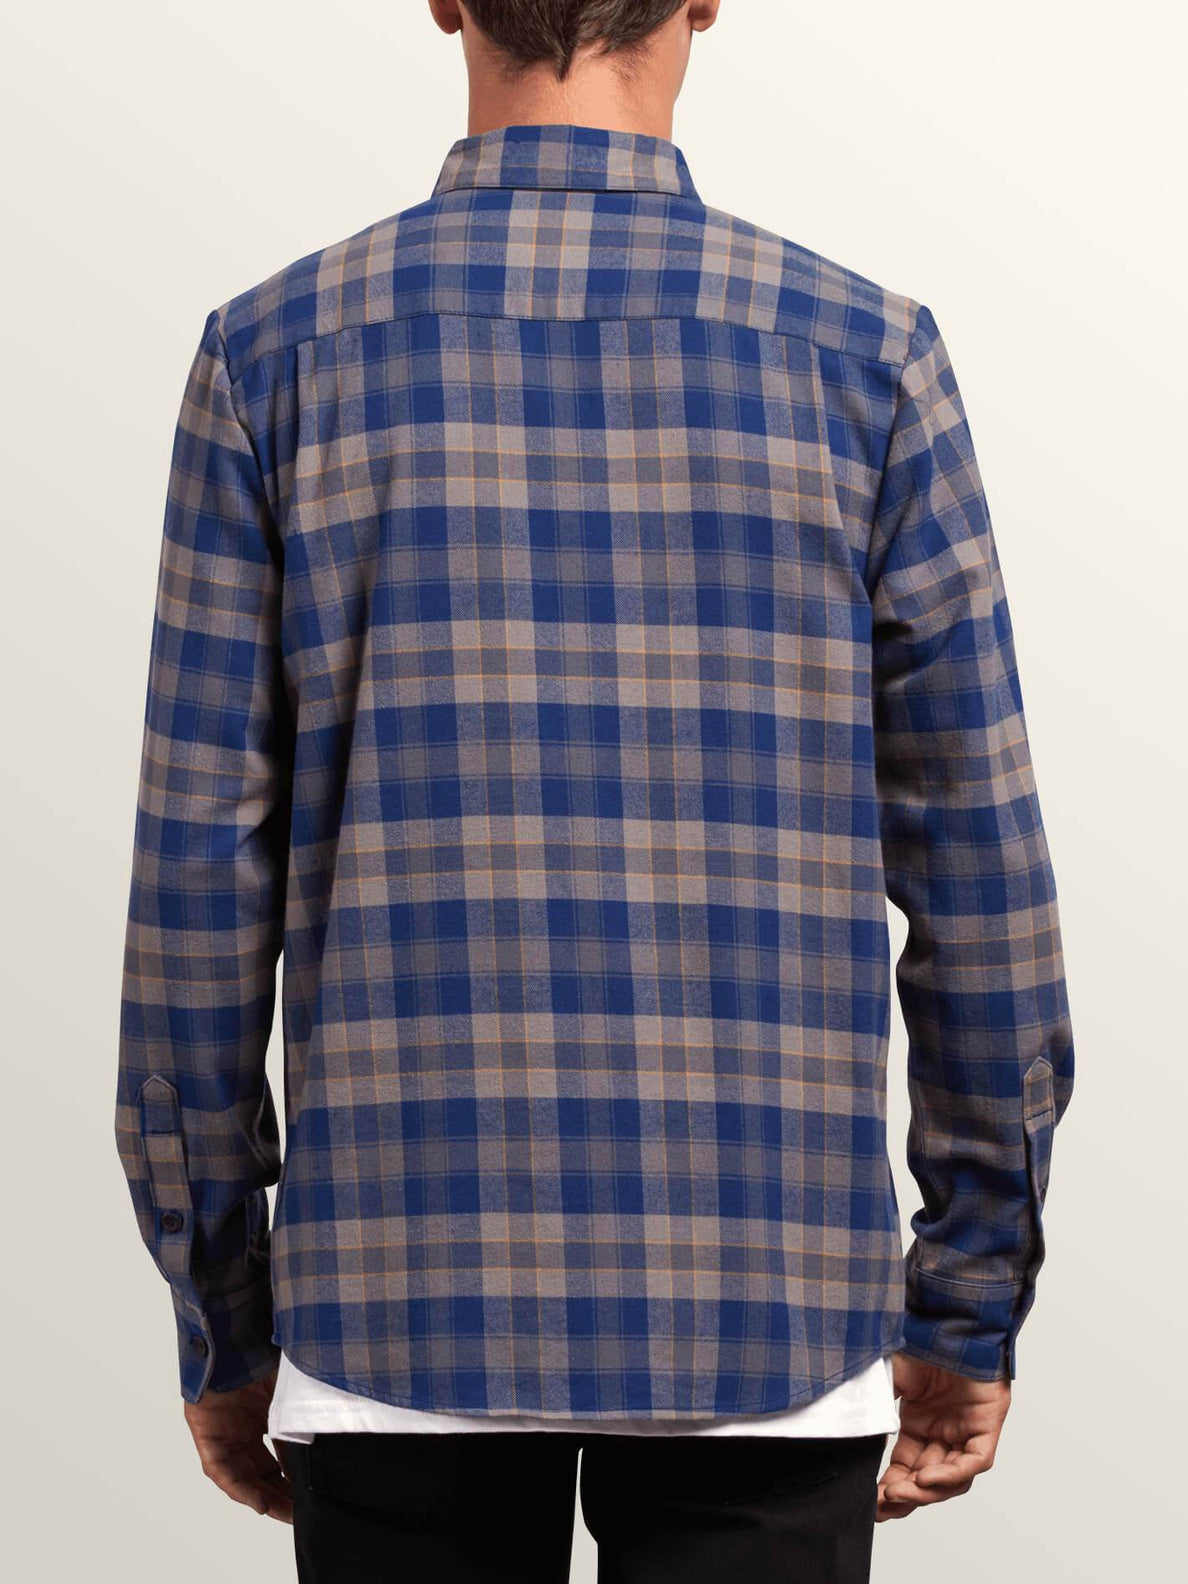 Caden Plaid Shirt - Matured Blue